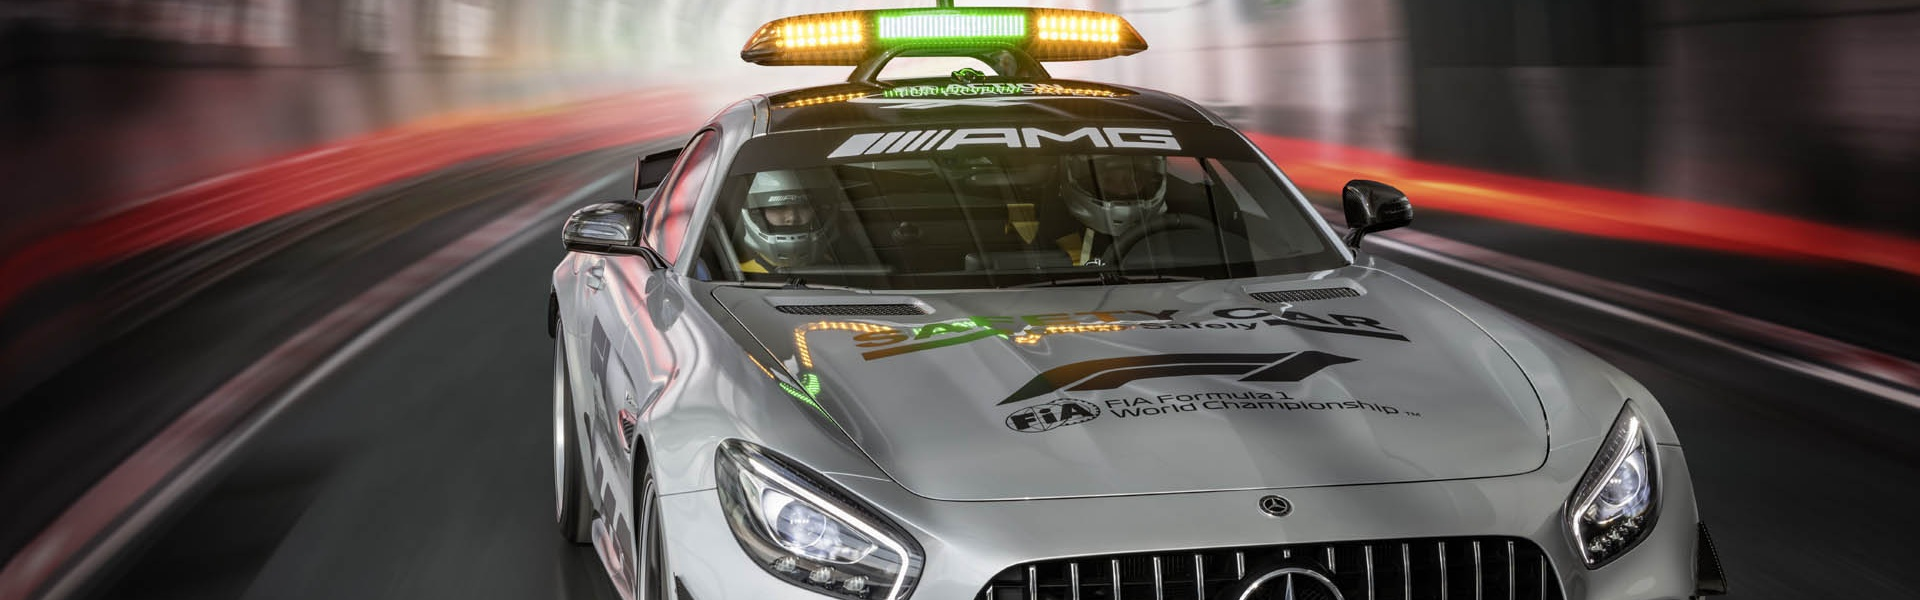 mercedes-amg-gt-r-f1-safety-car-06.jpg